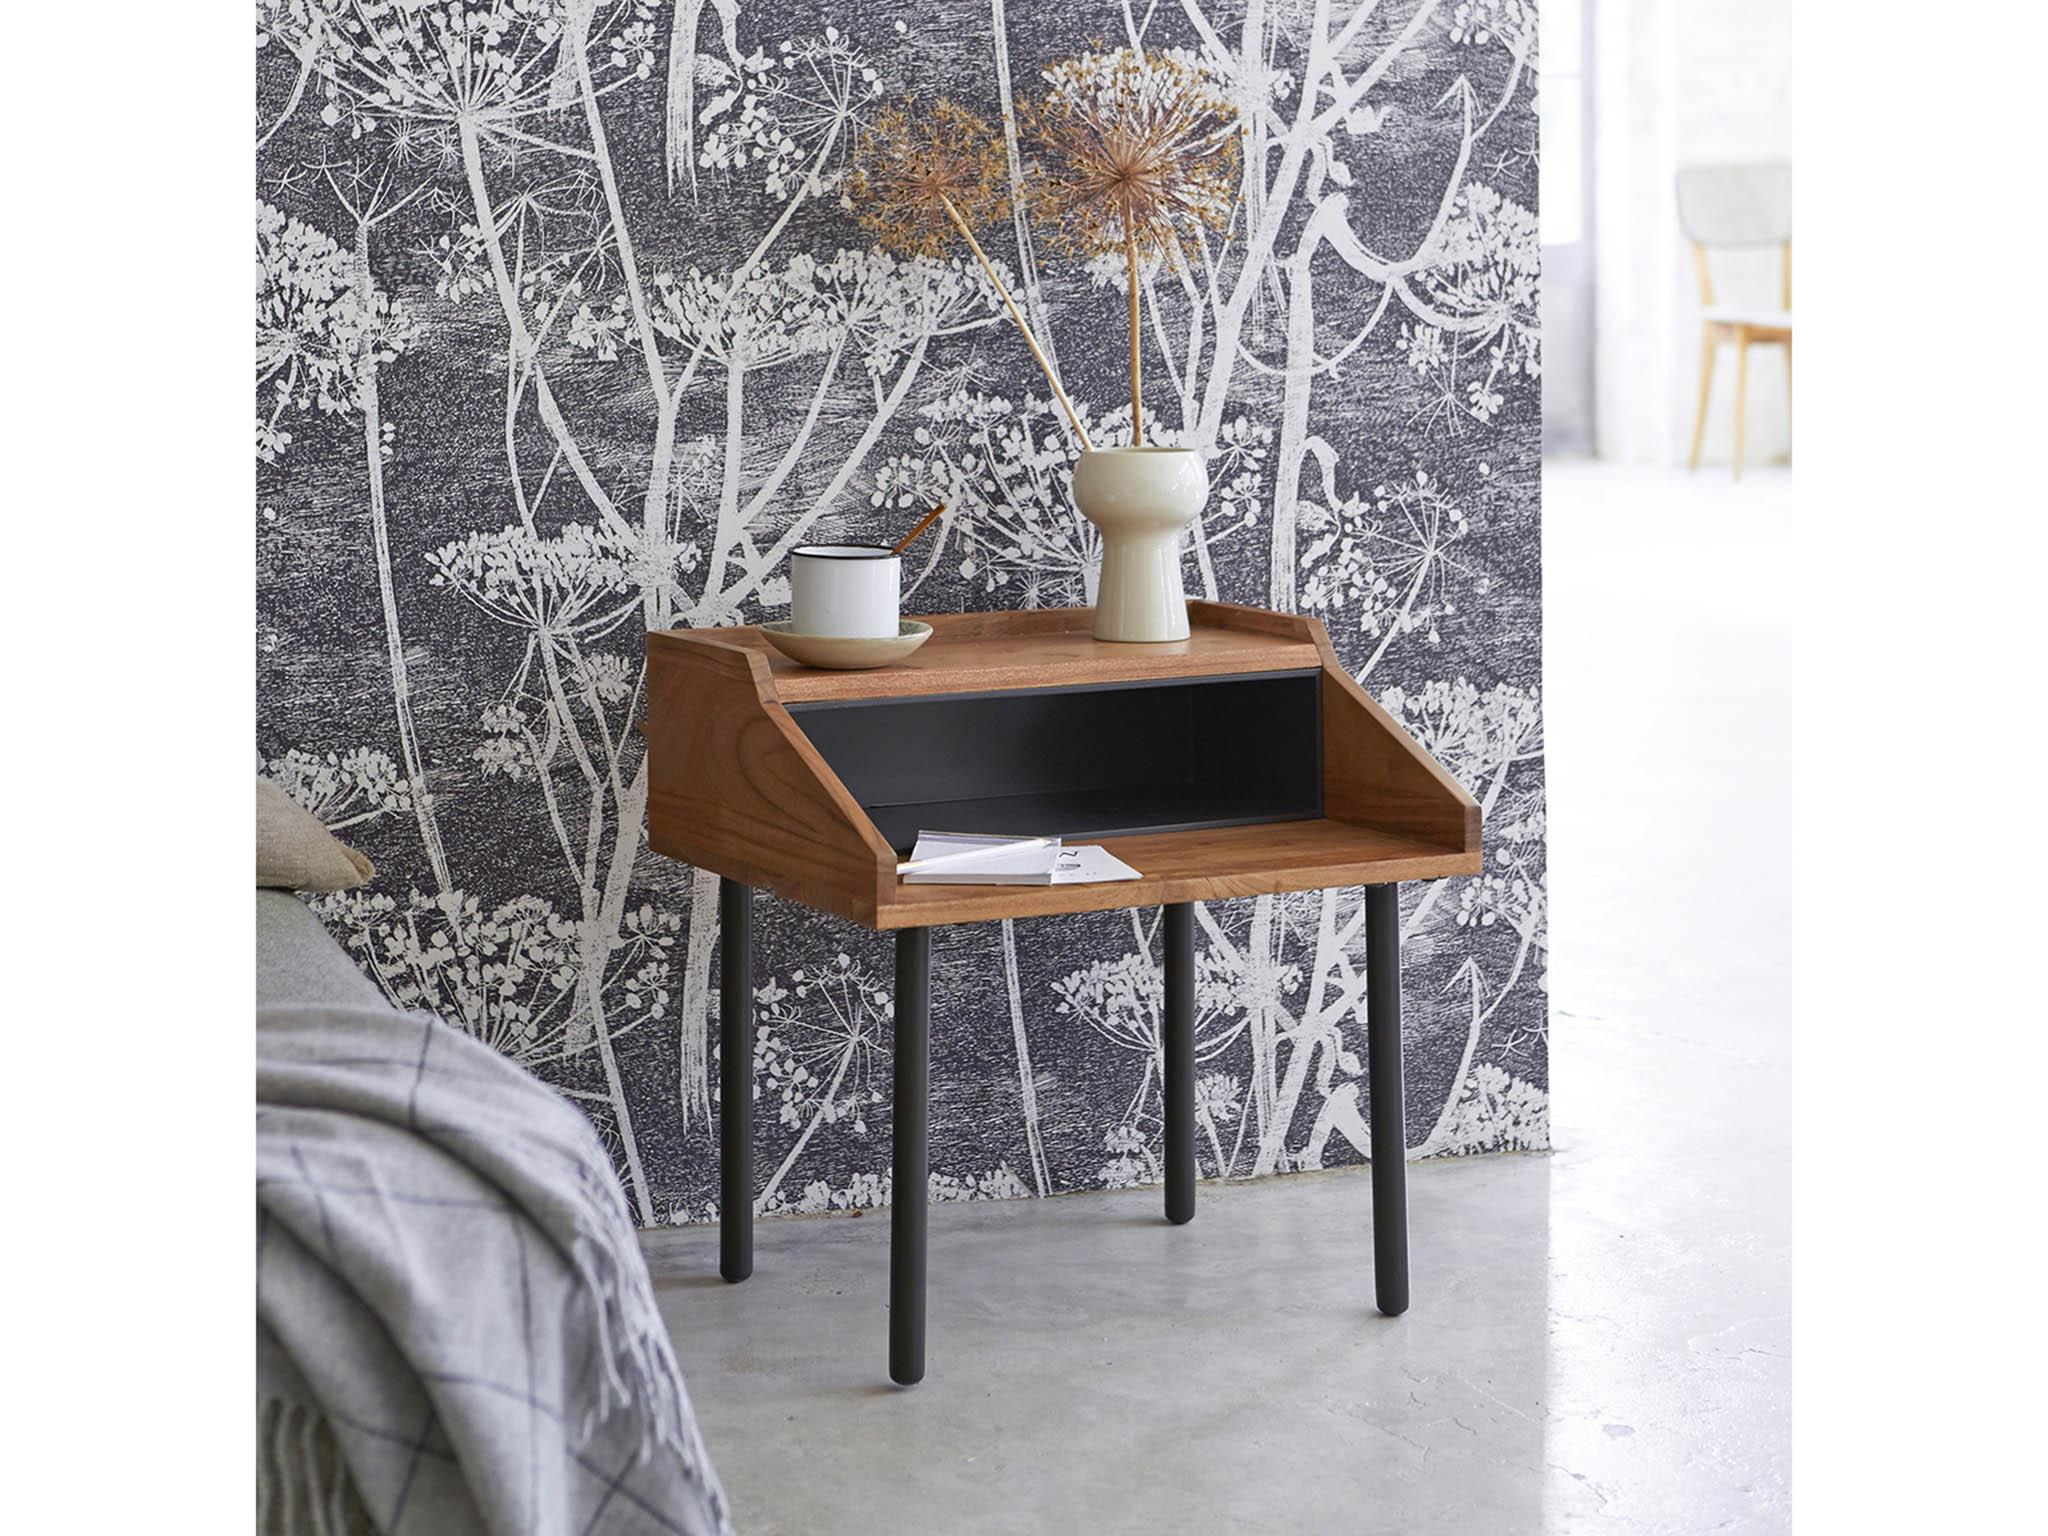 10 best side tables | The Independent